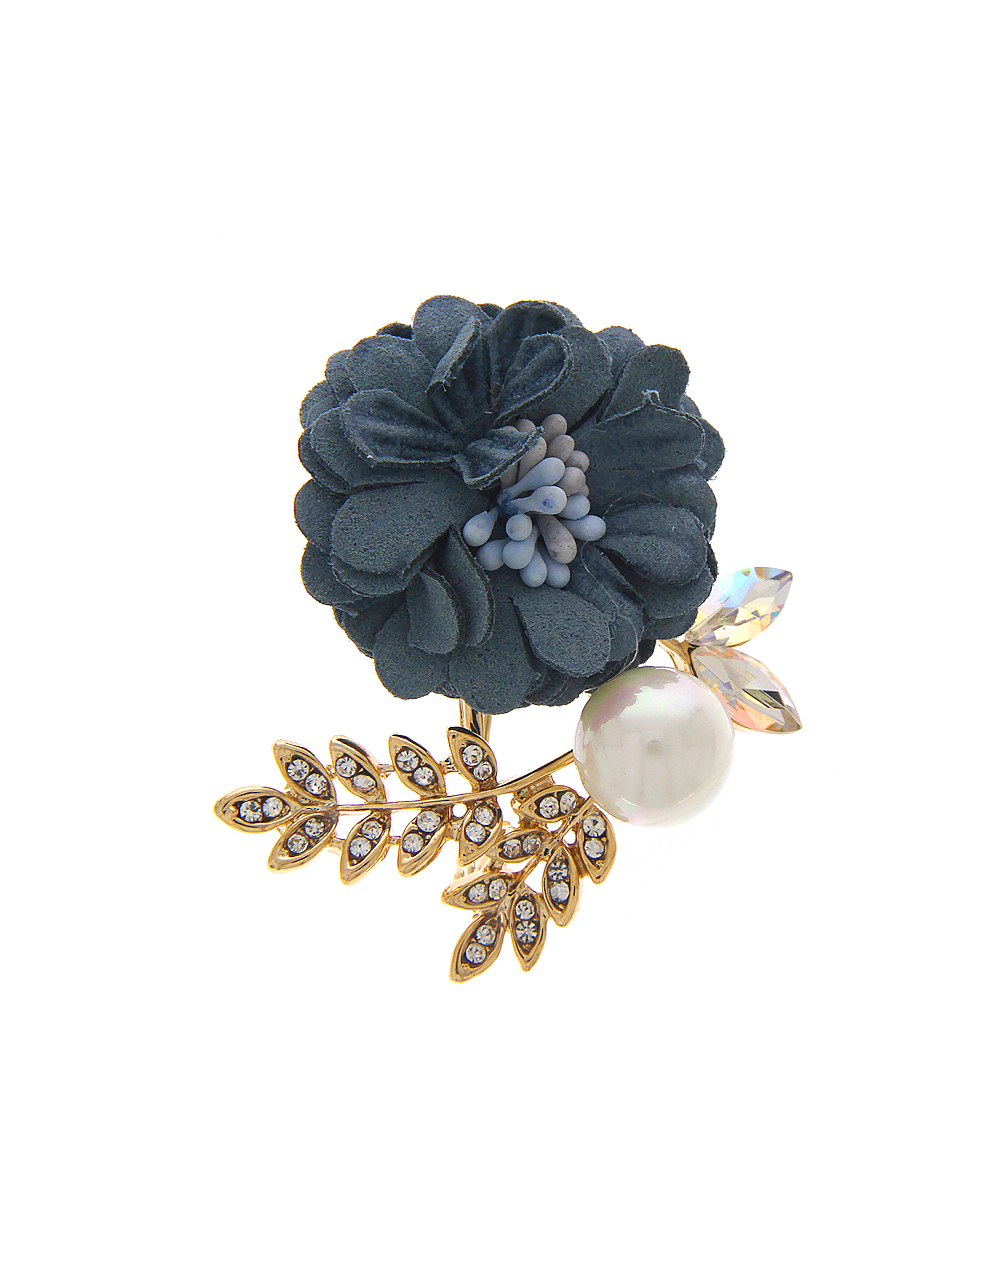 Grey Floral Brooch Styled With Sparkling Stones  Pearls